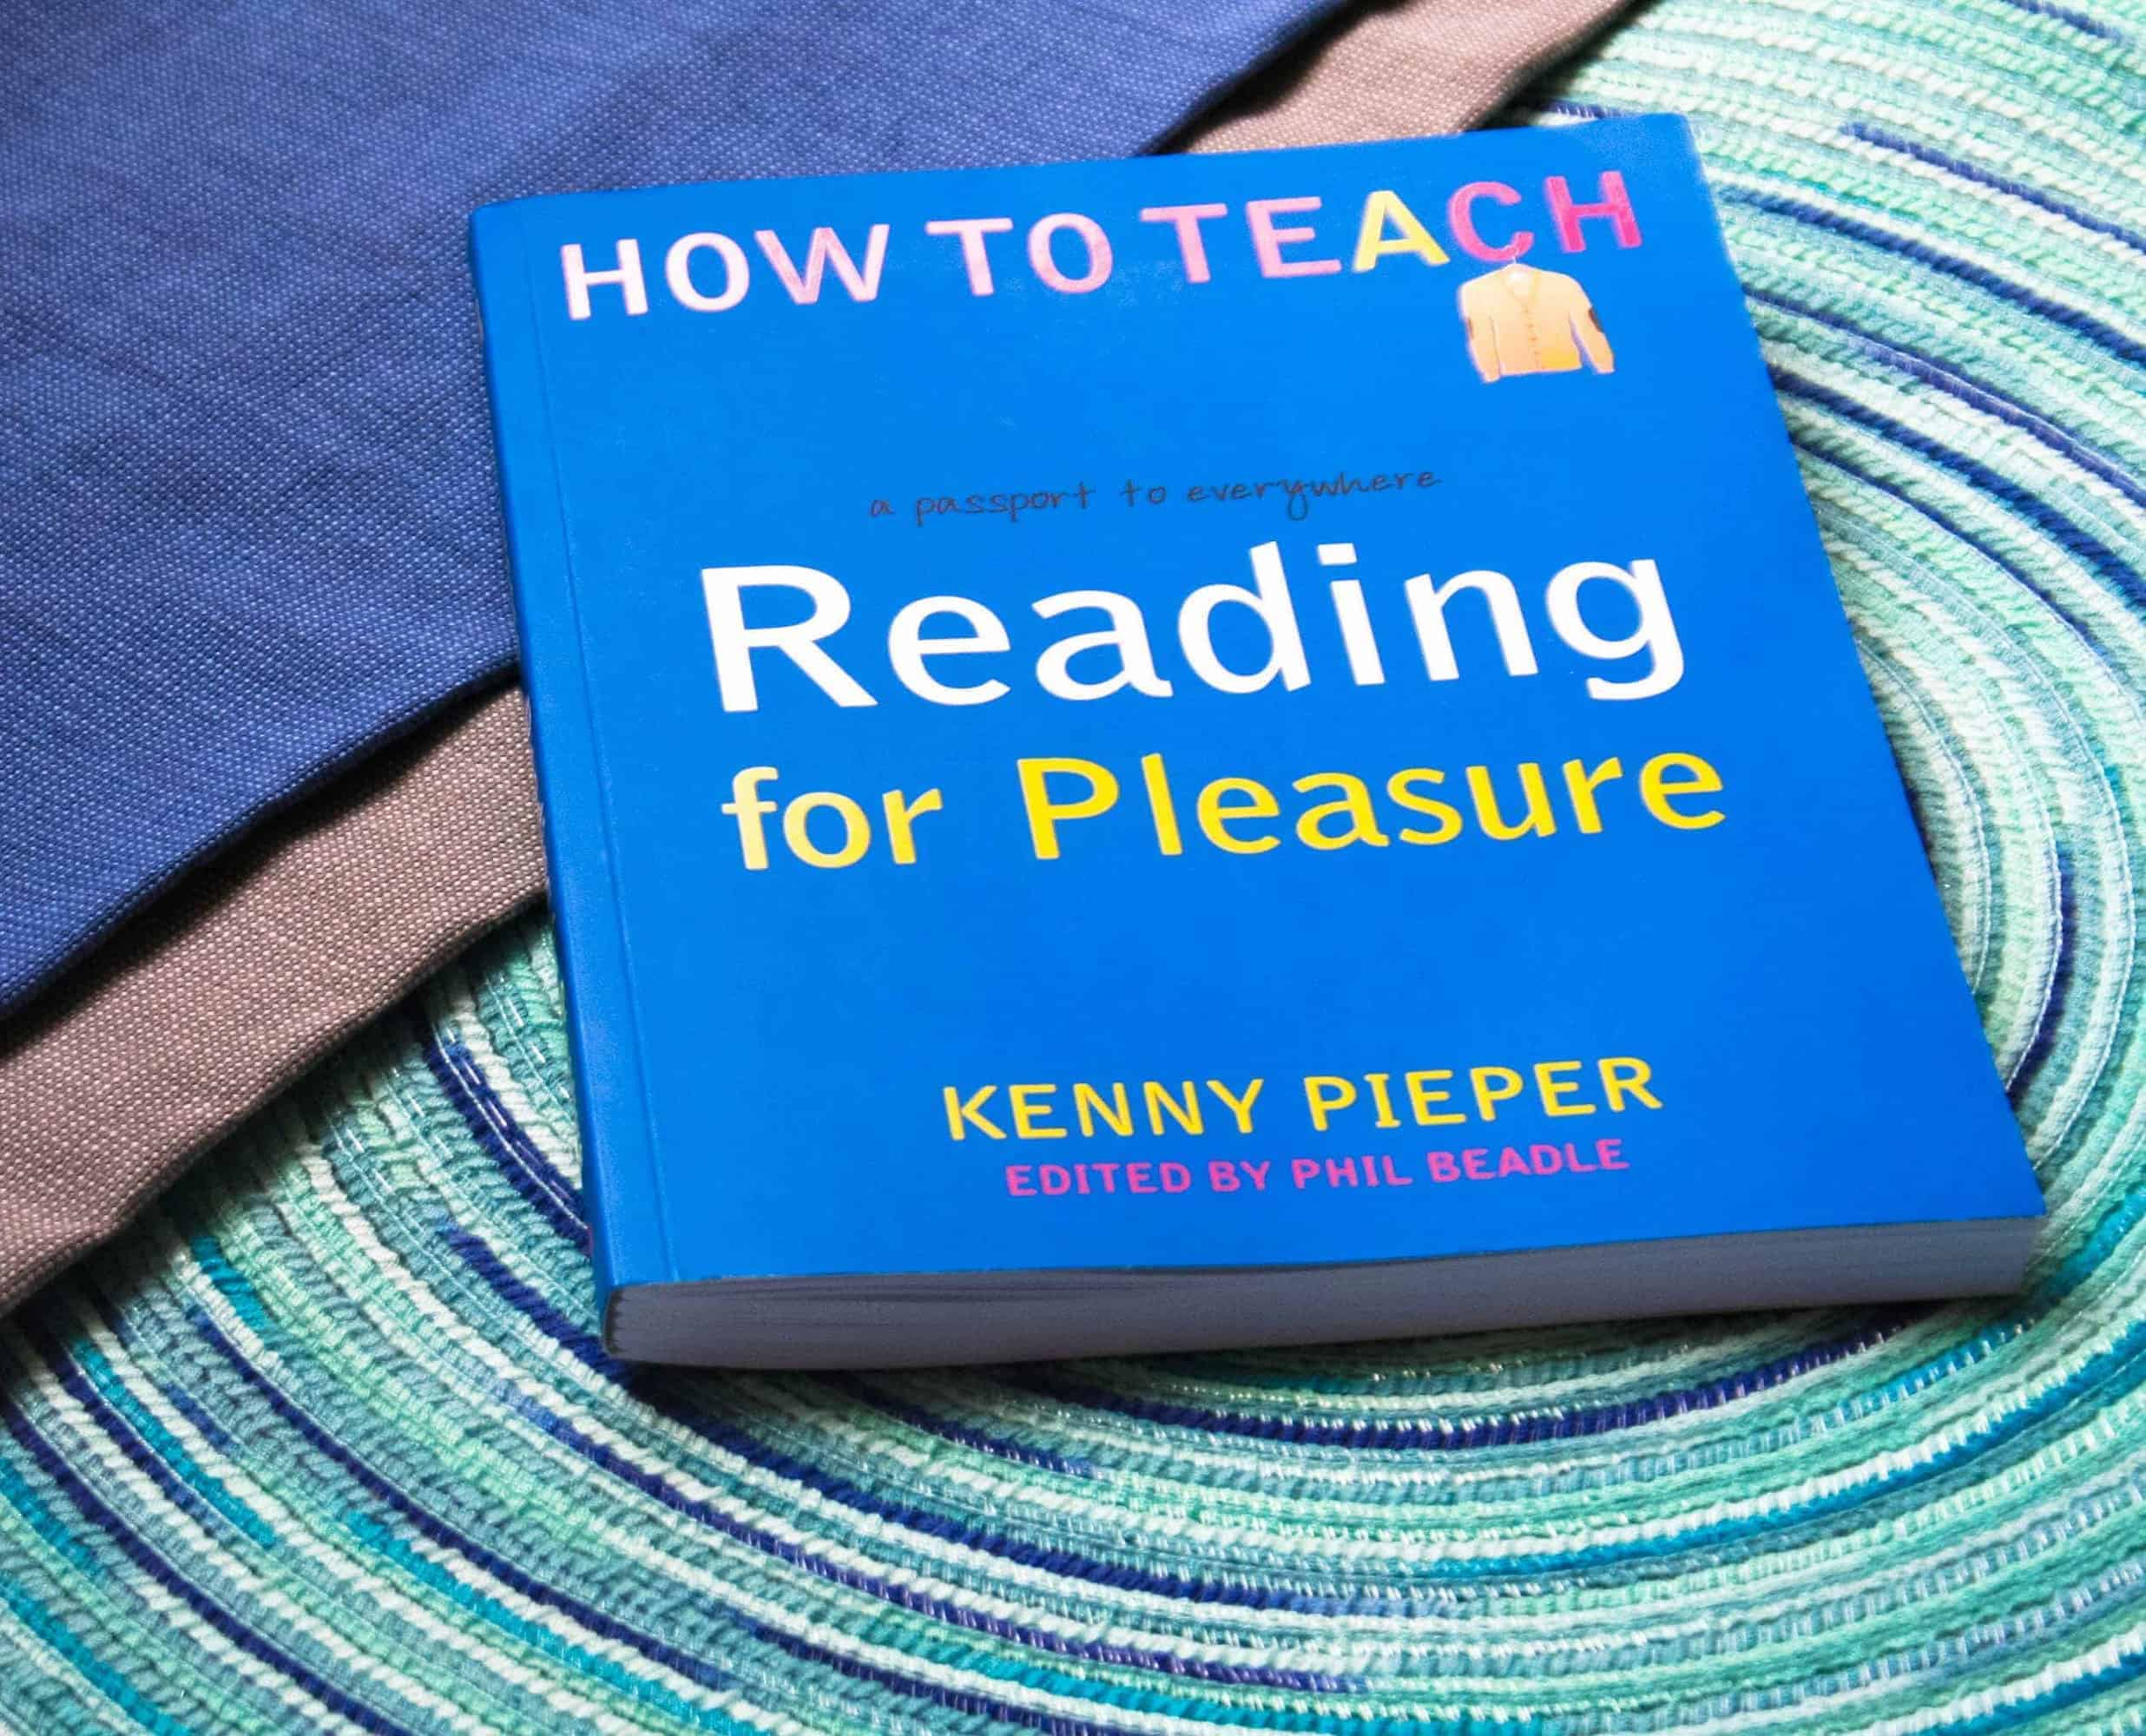 How to Teach Reading for Pleasure offers strategies and ideas to encourage a love of reading in secondary students.